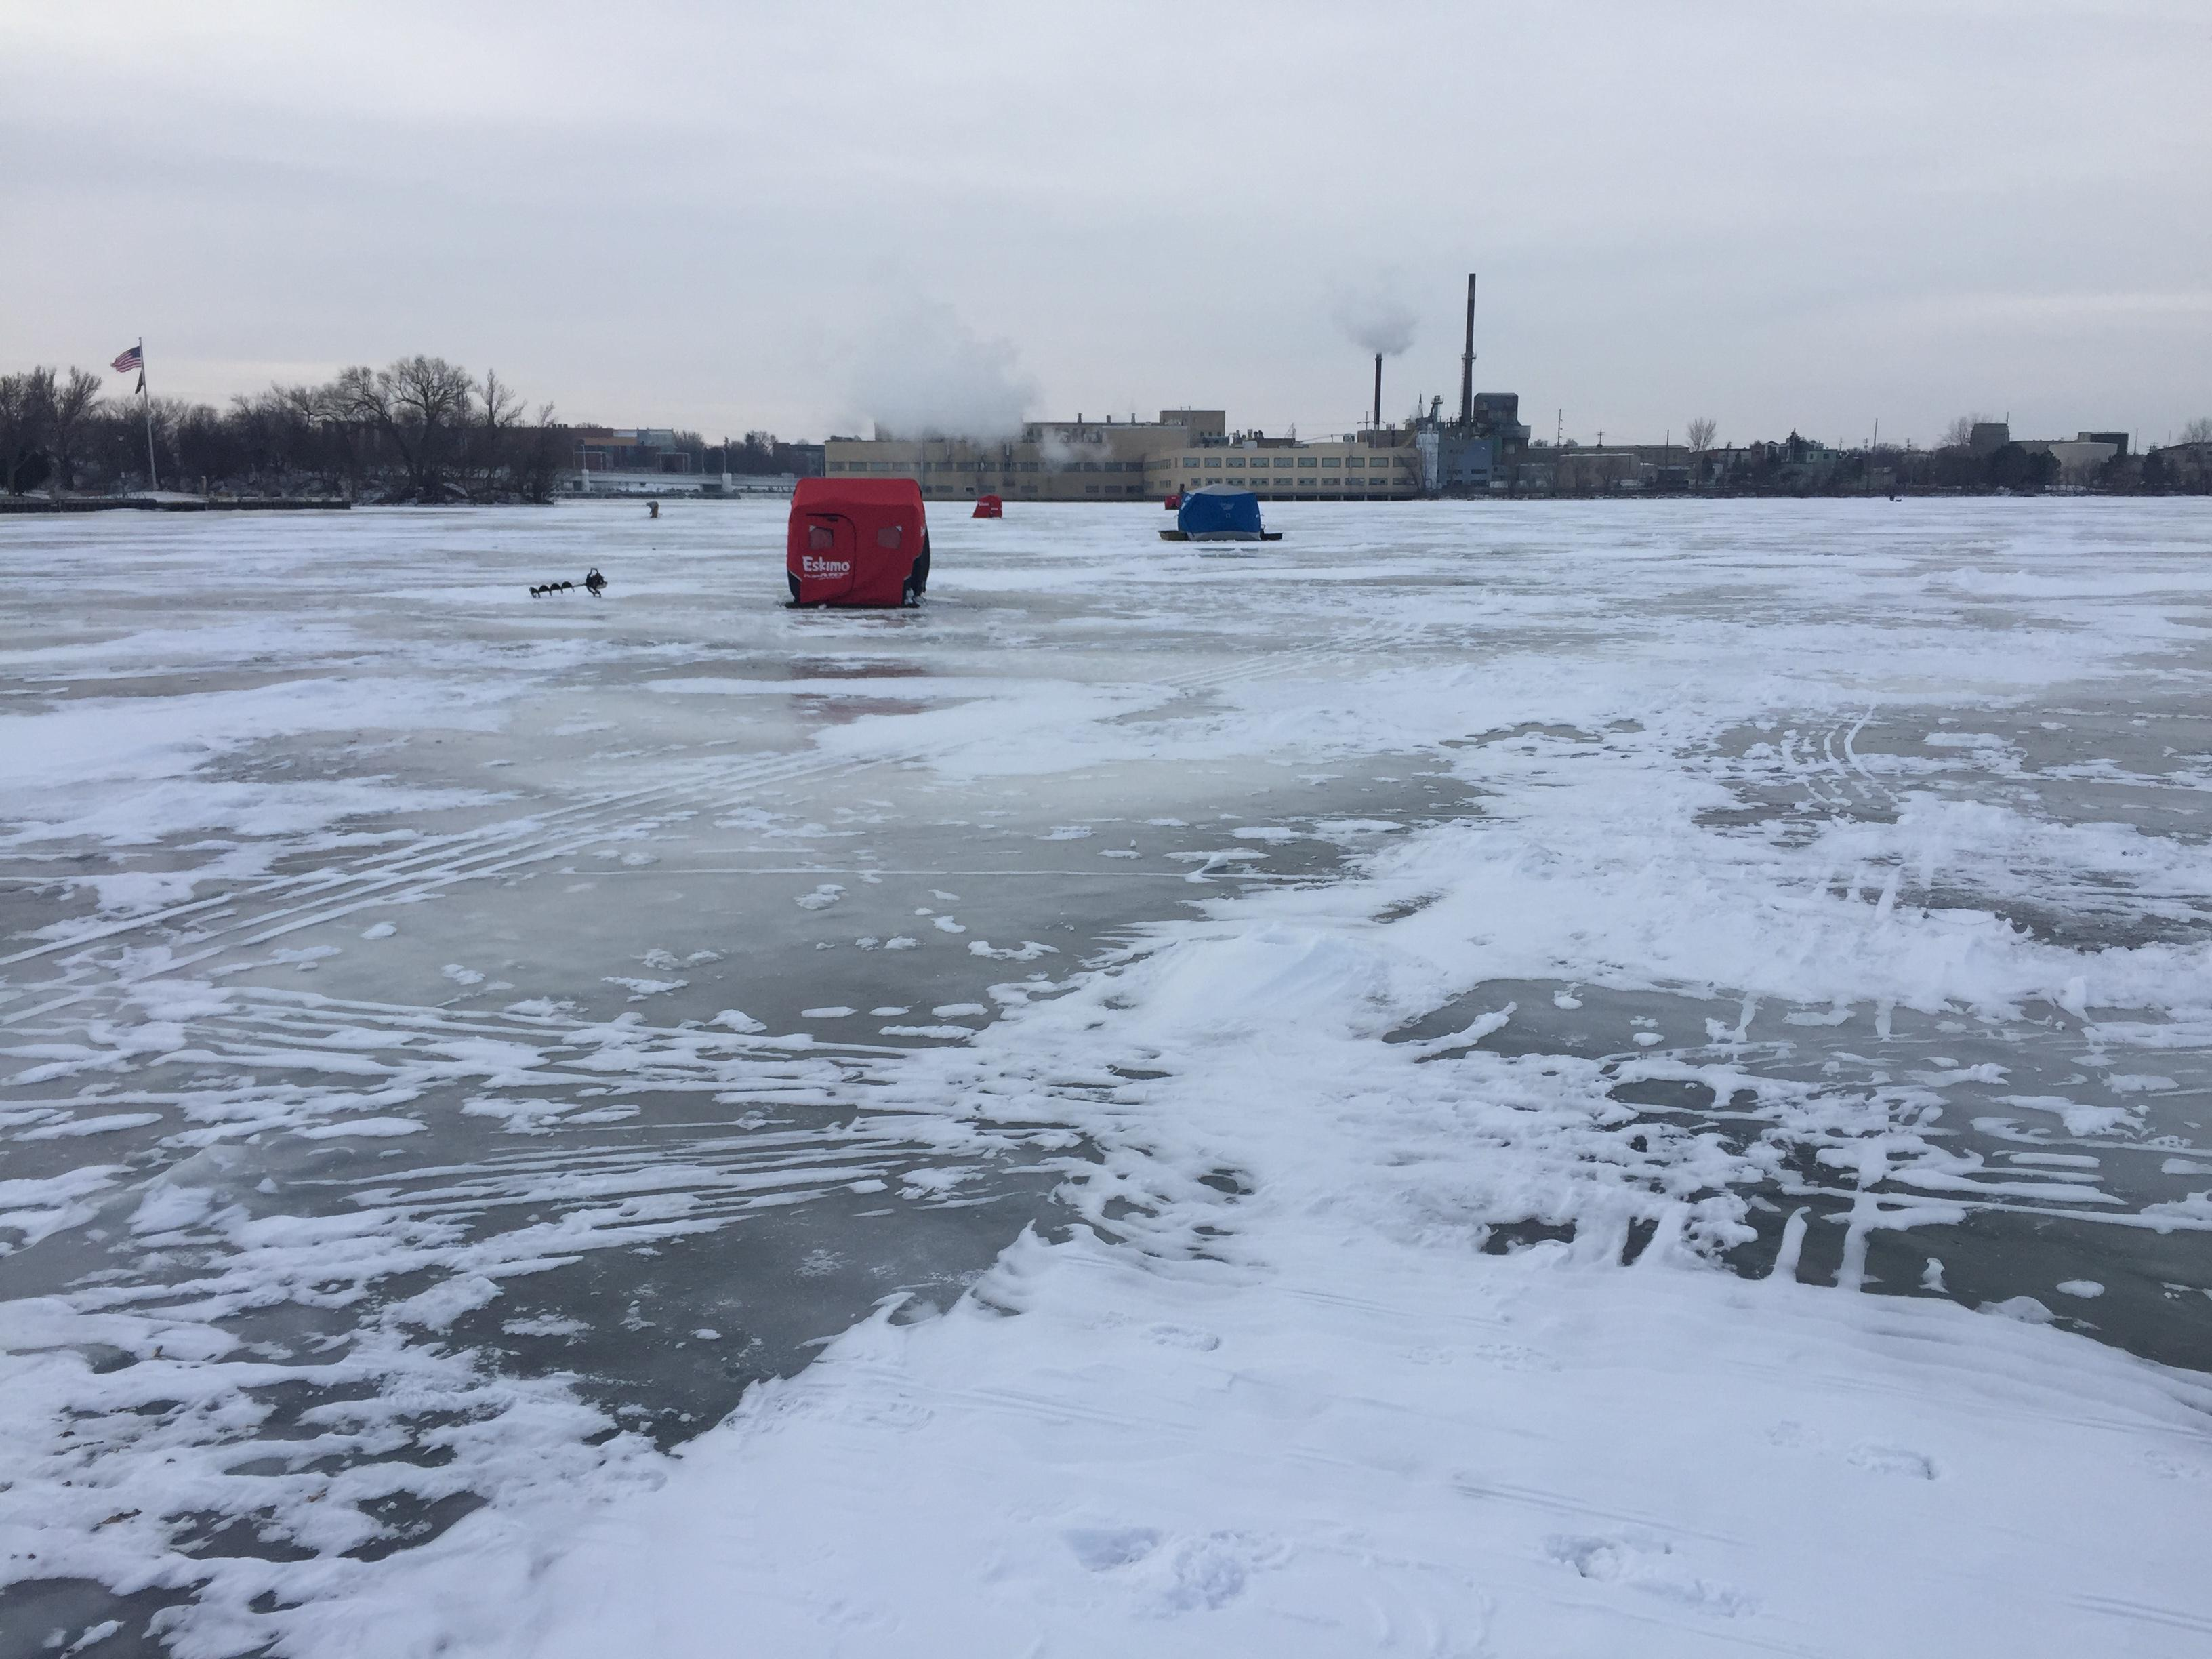 Ice fishing shelters on the Fox River in De Pere, January 19, 2018 (WLUK/Eric Peterson)